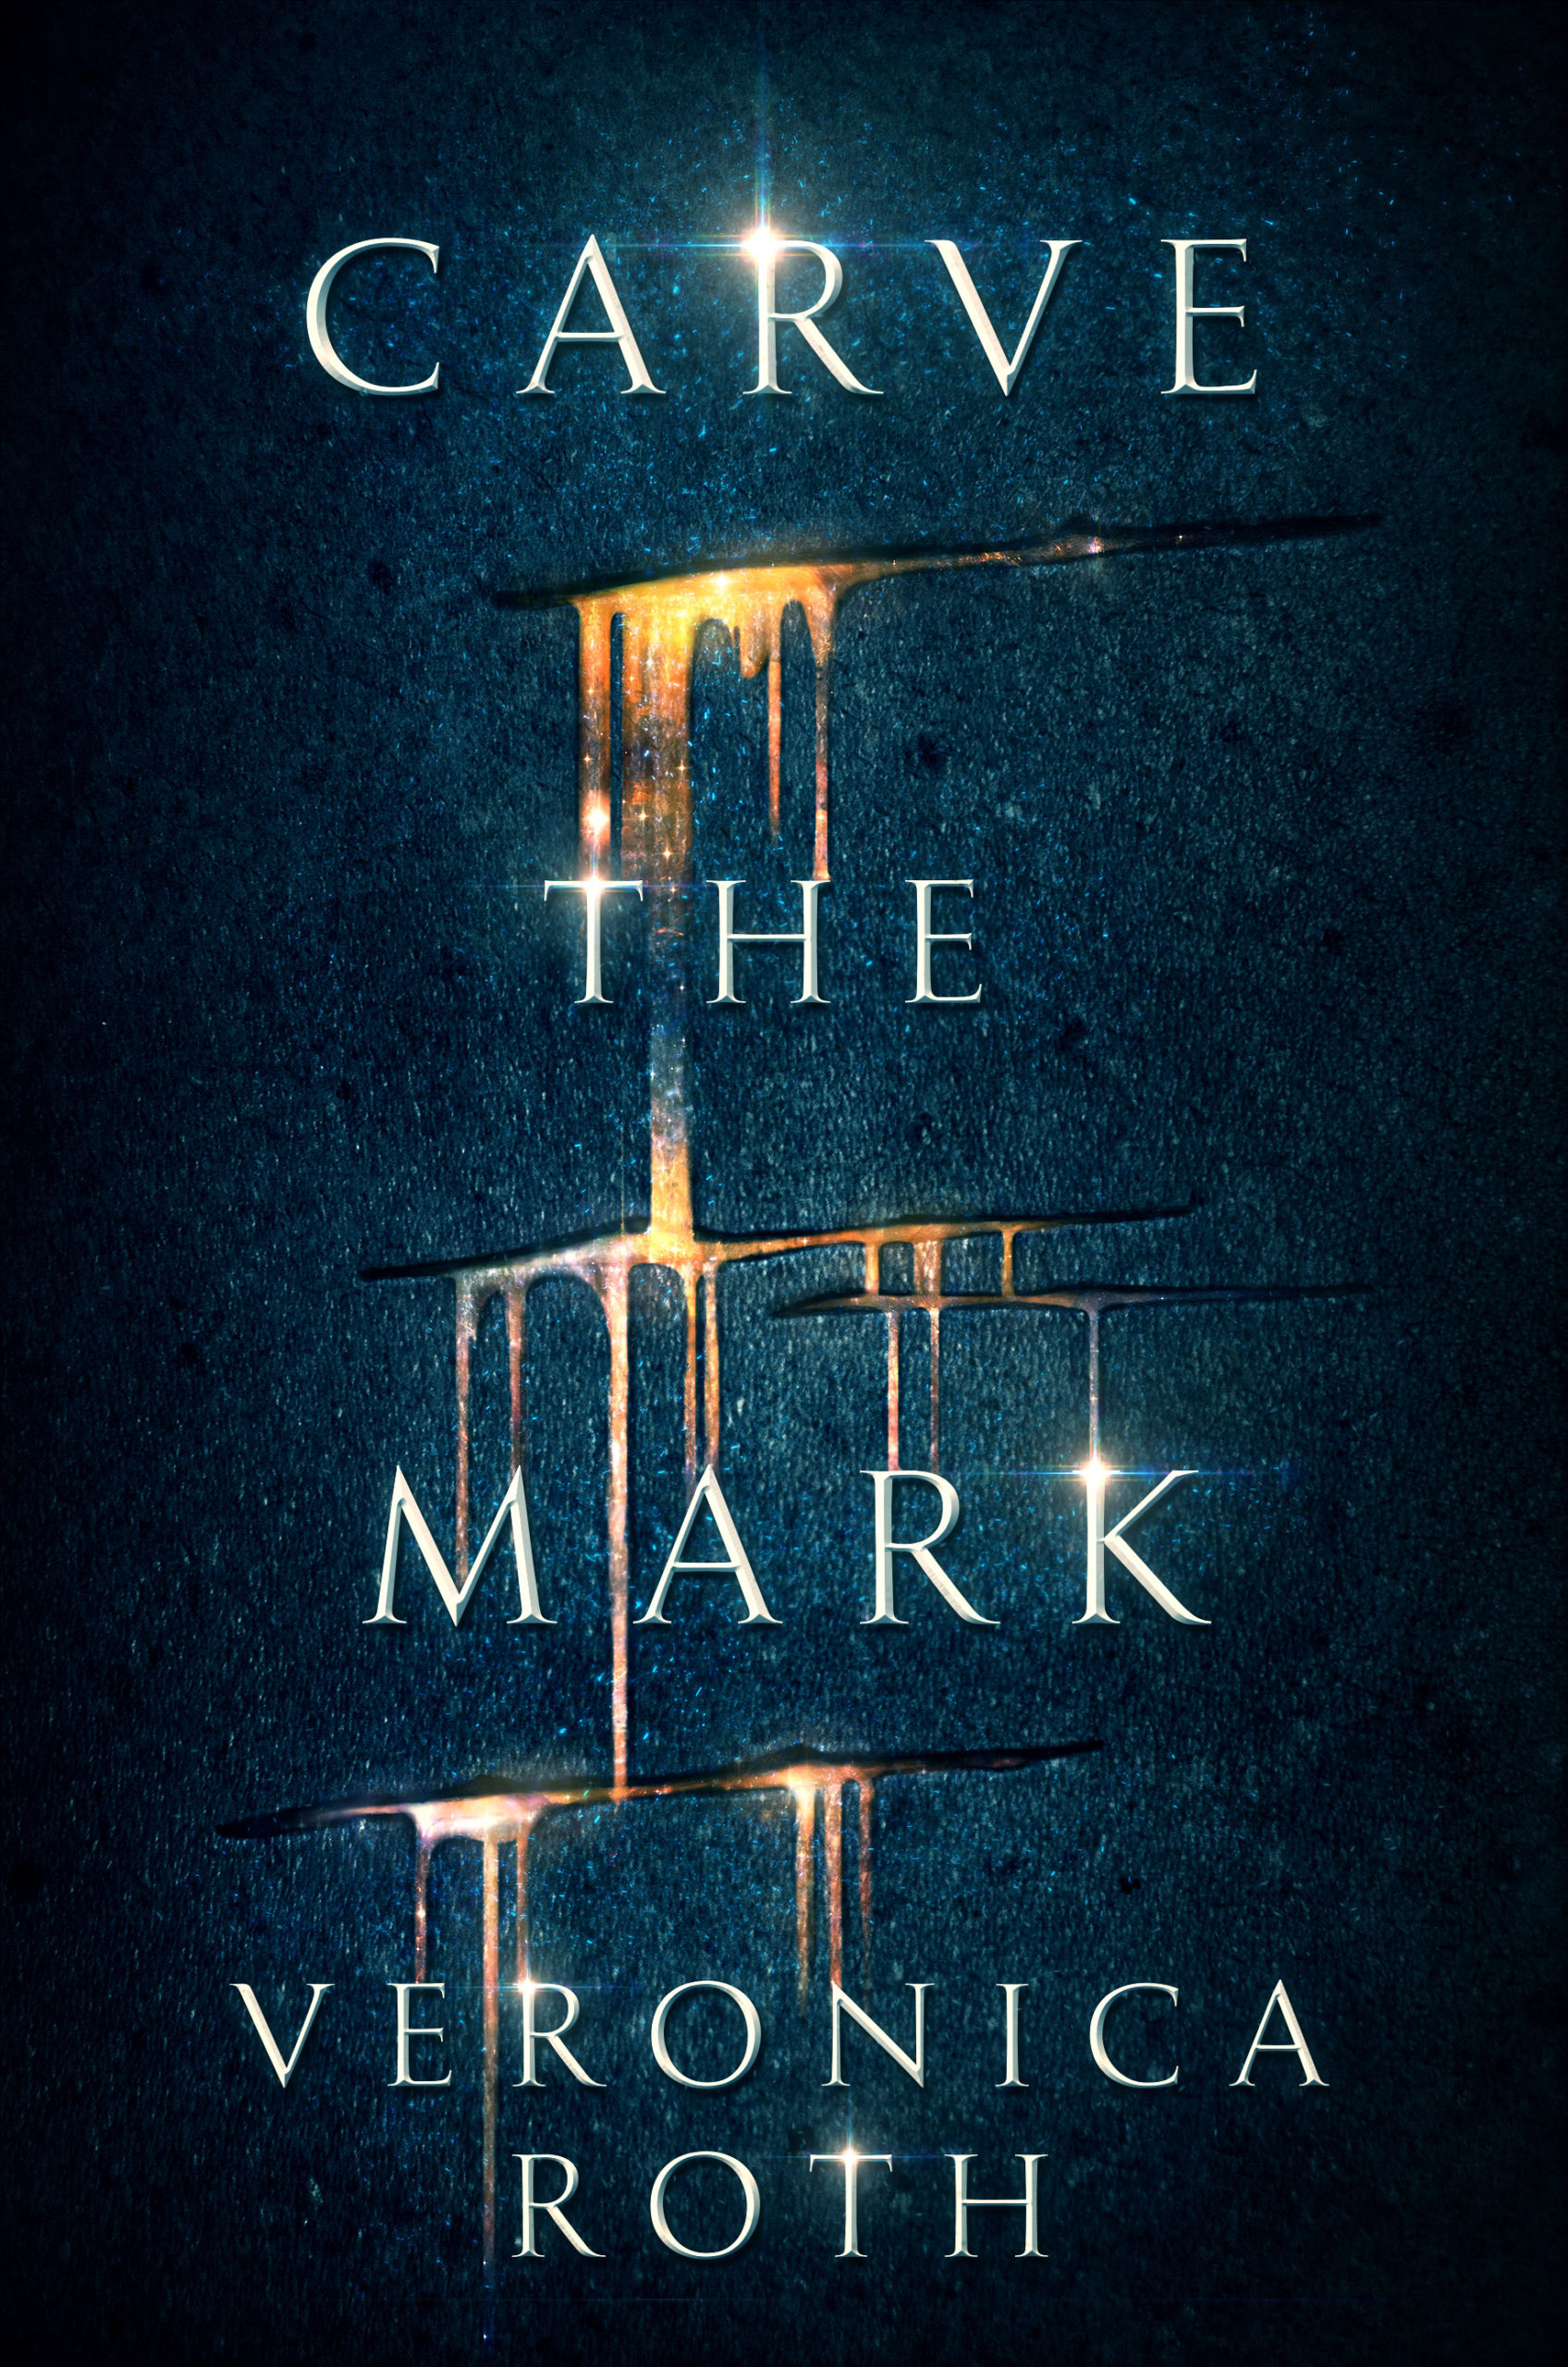 Carve-The-Mark-Final